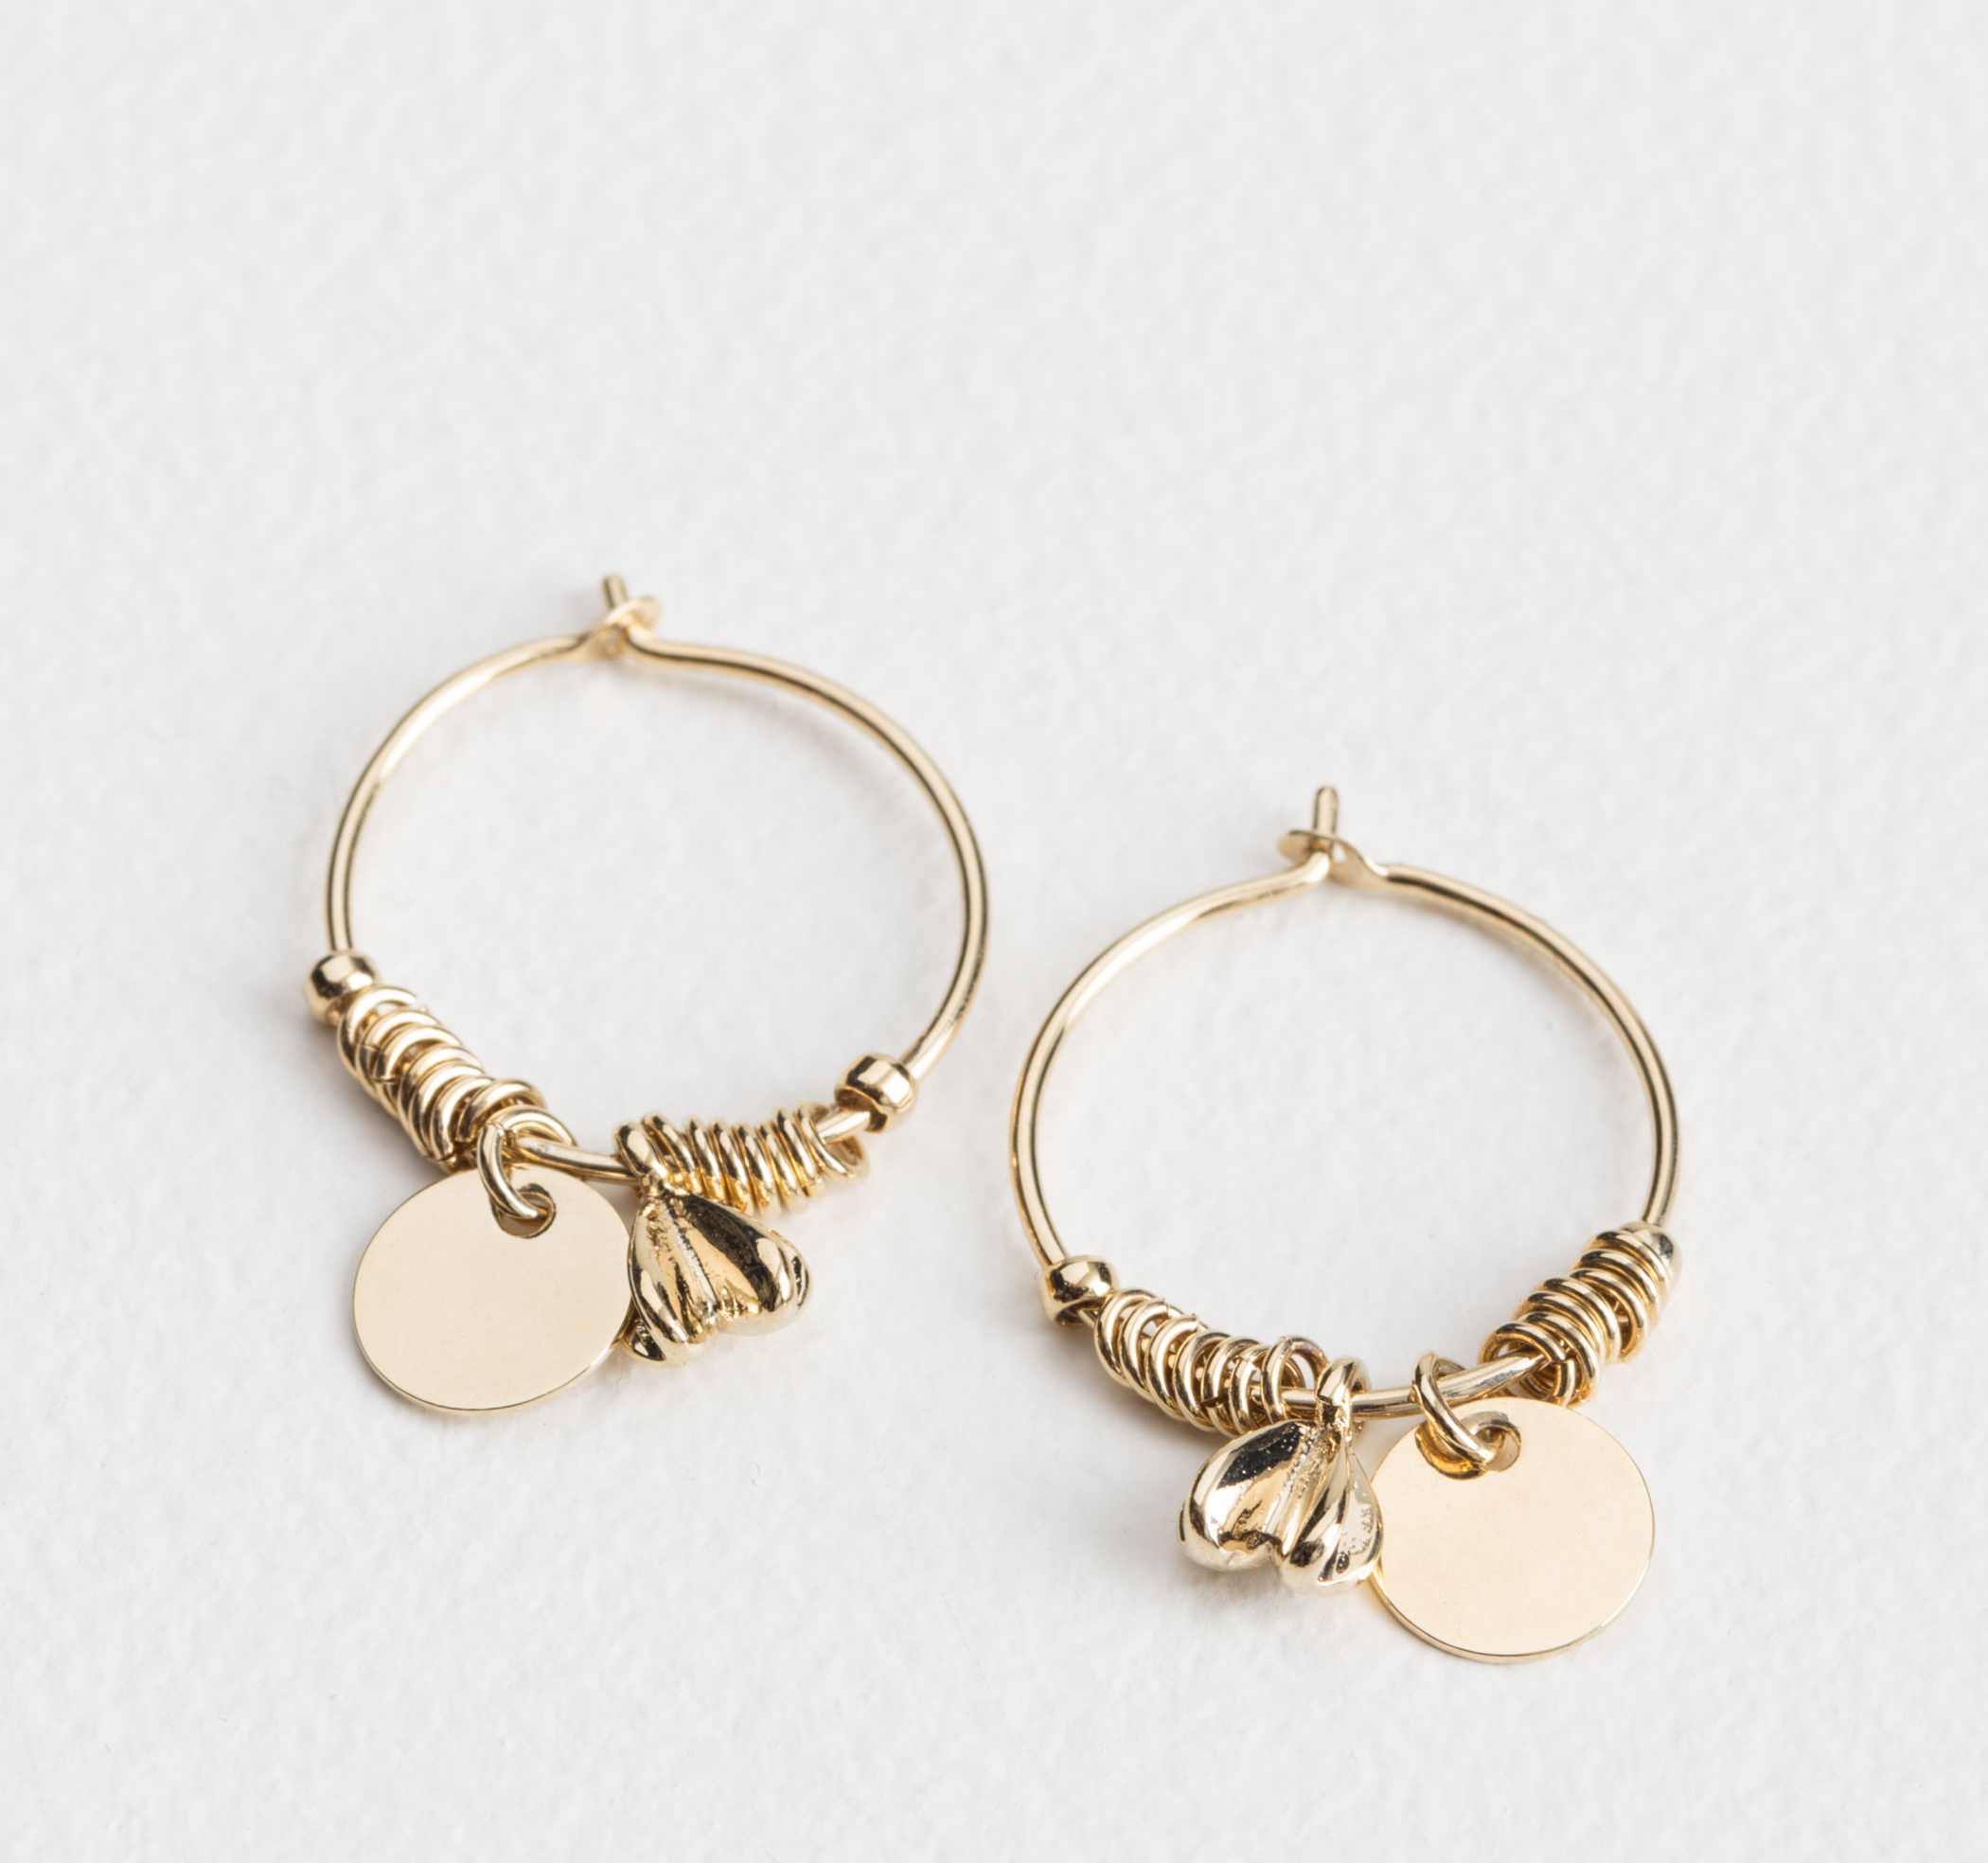 & Other Stories Ornament Hoops £13